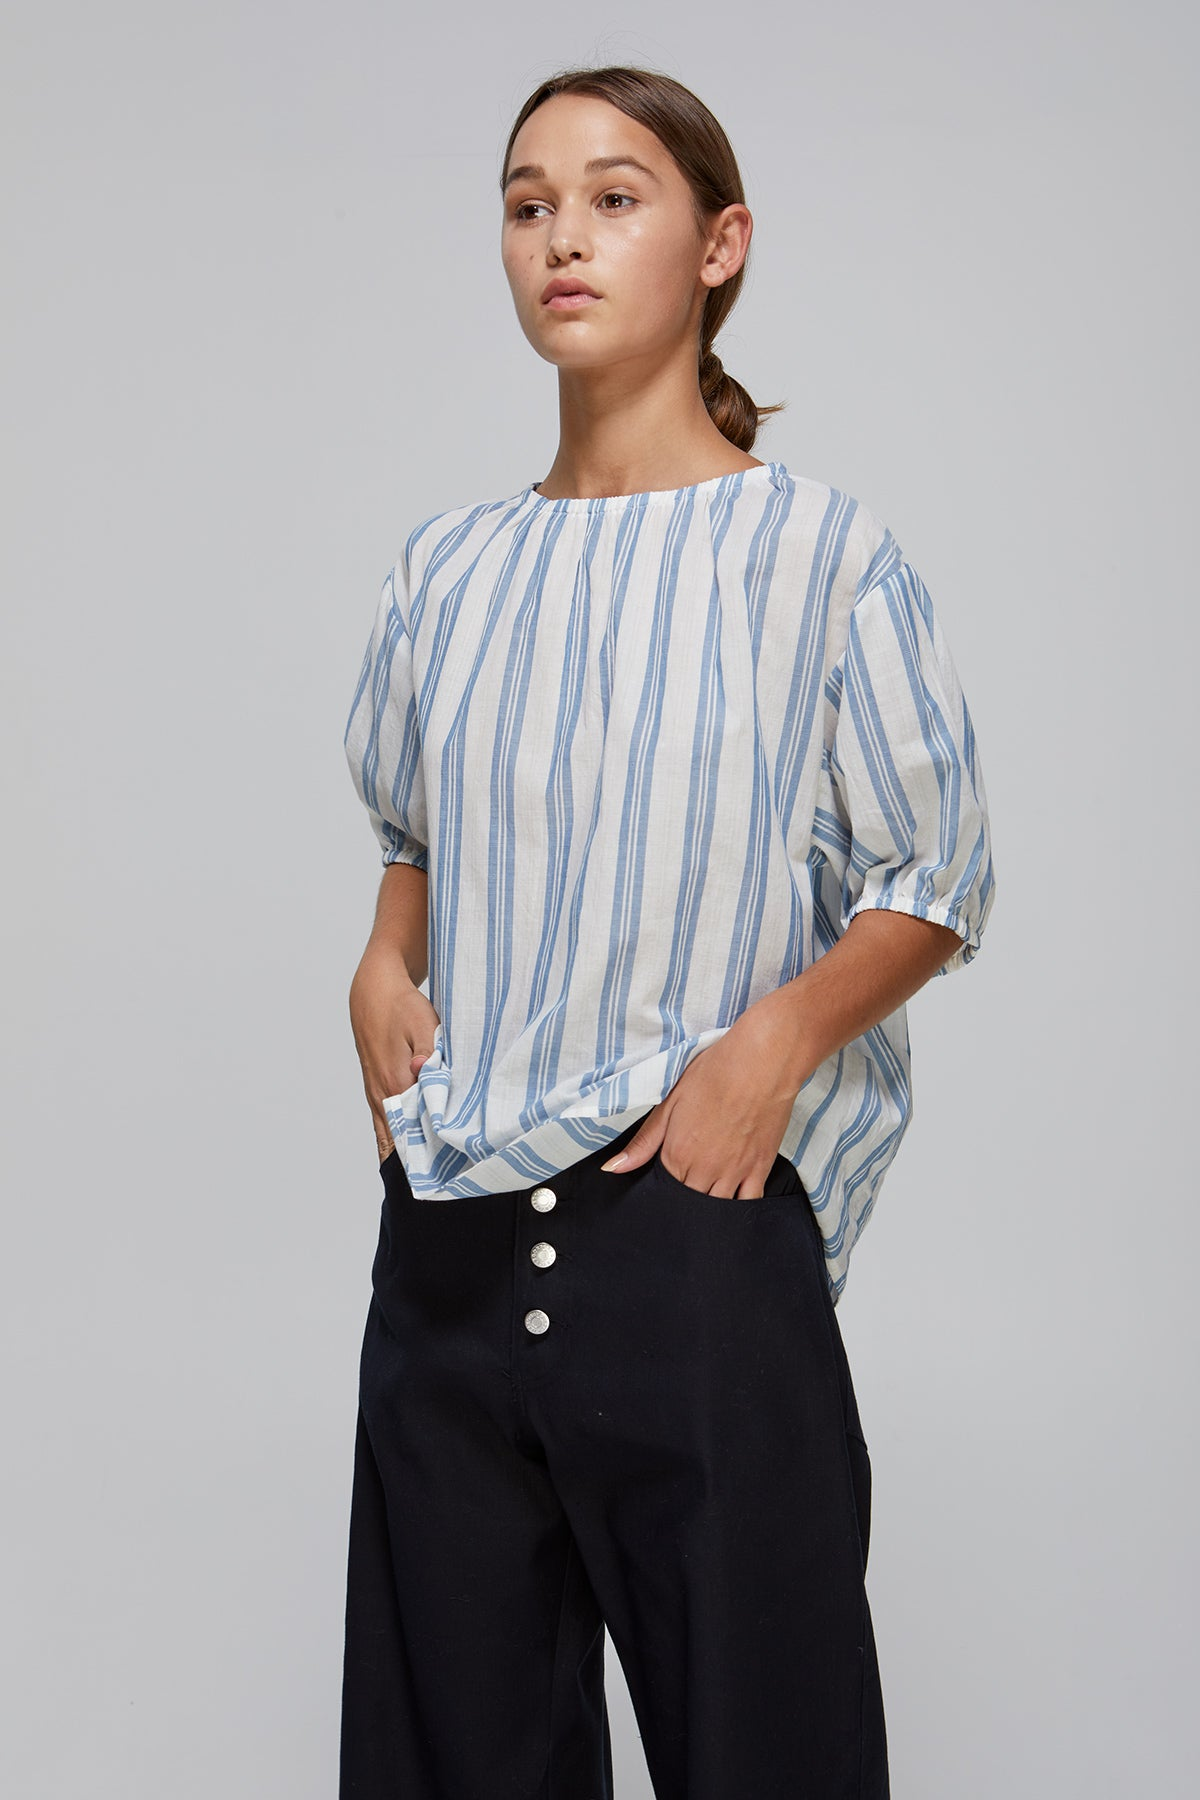 Epany Top Blue Stripe Gregory SS20 Collection NZ Sustainable Fashion Design